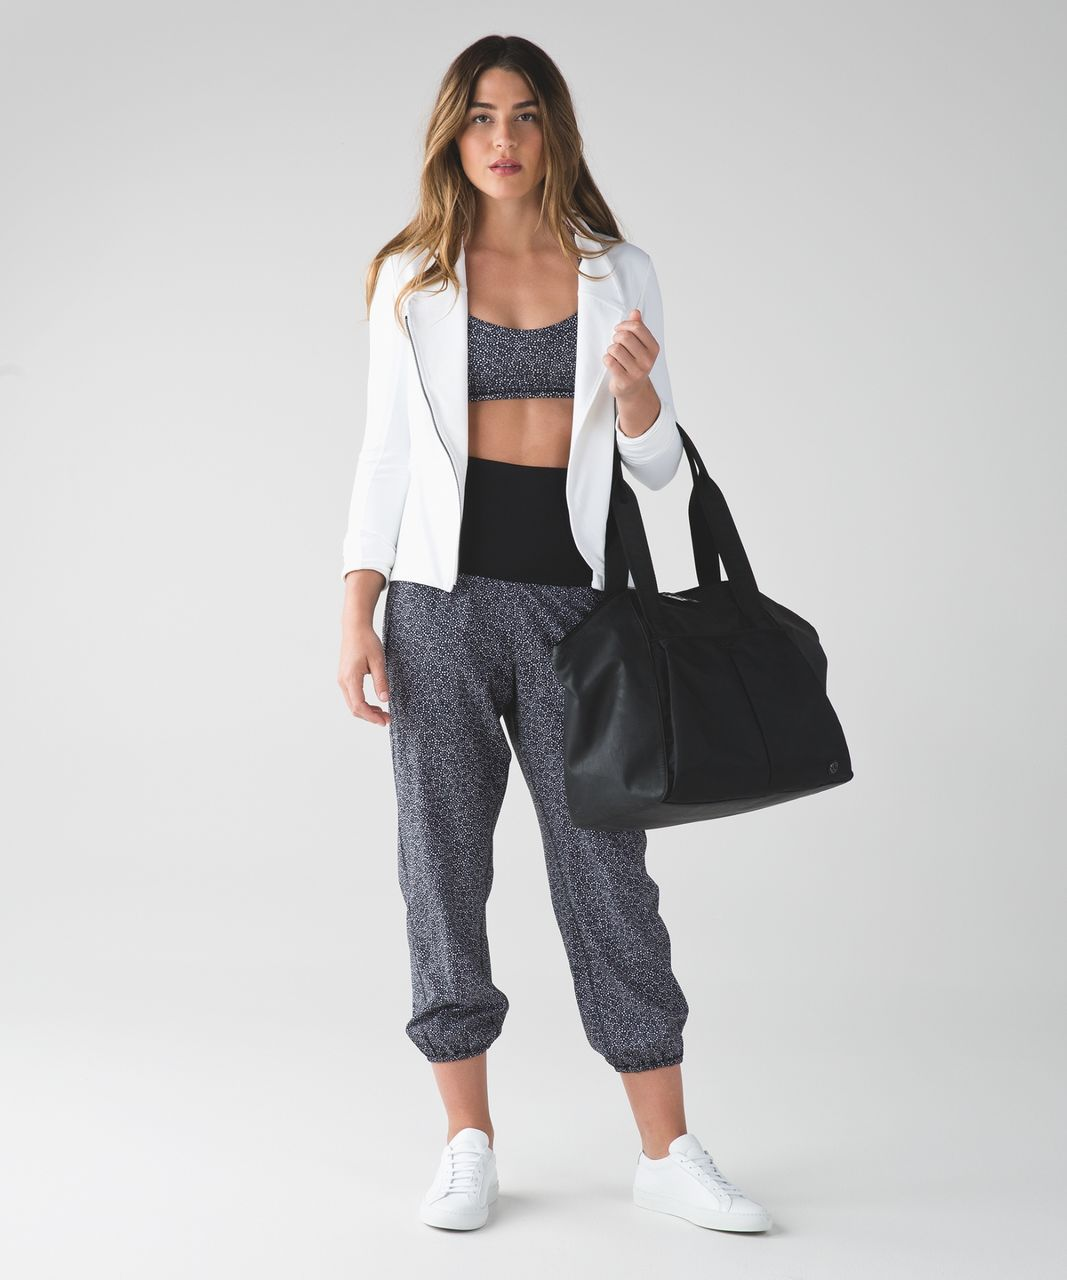 Lululemon Om Pant - Freckle Flower Black White / Black